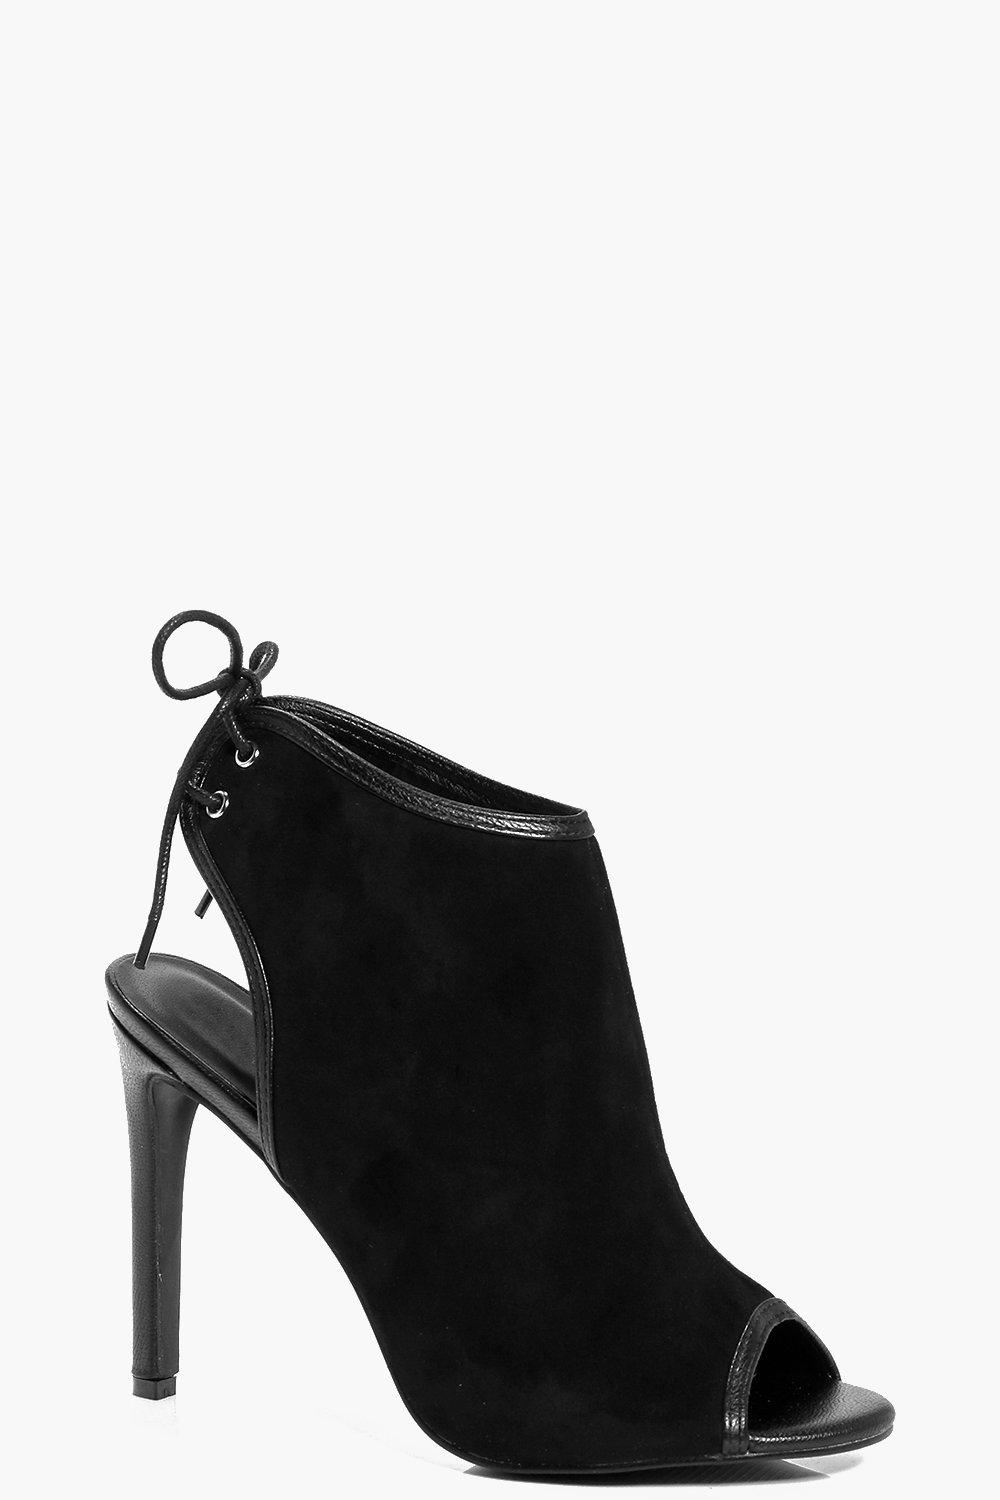 Freya Open Back Peep Toe Suedette Shoe Boot